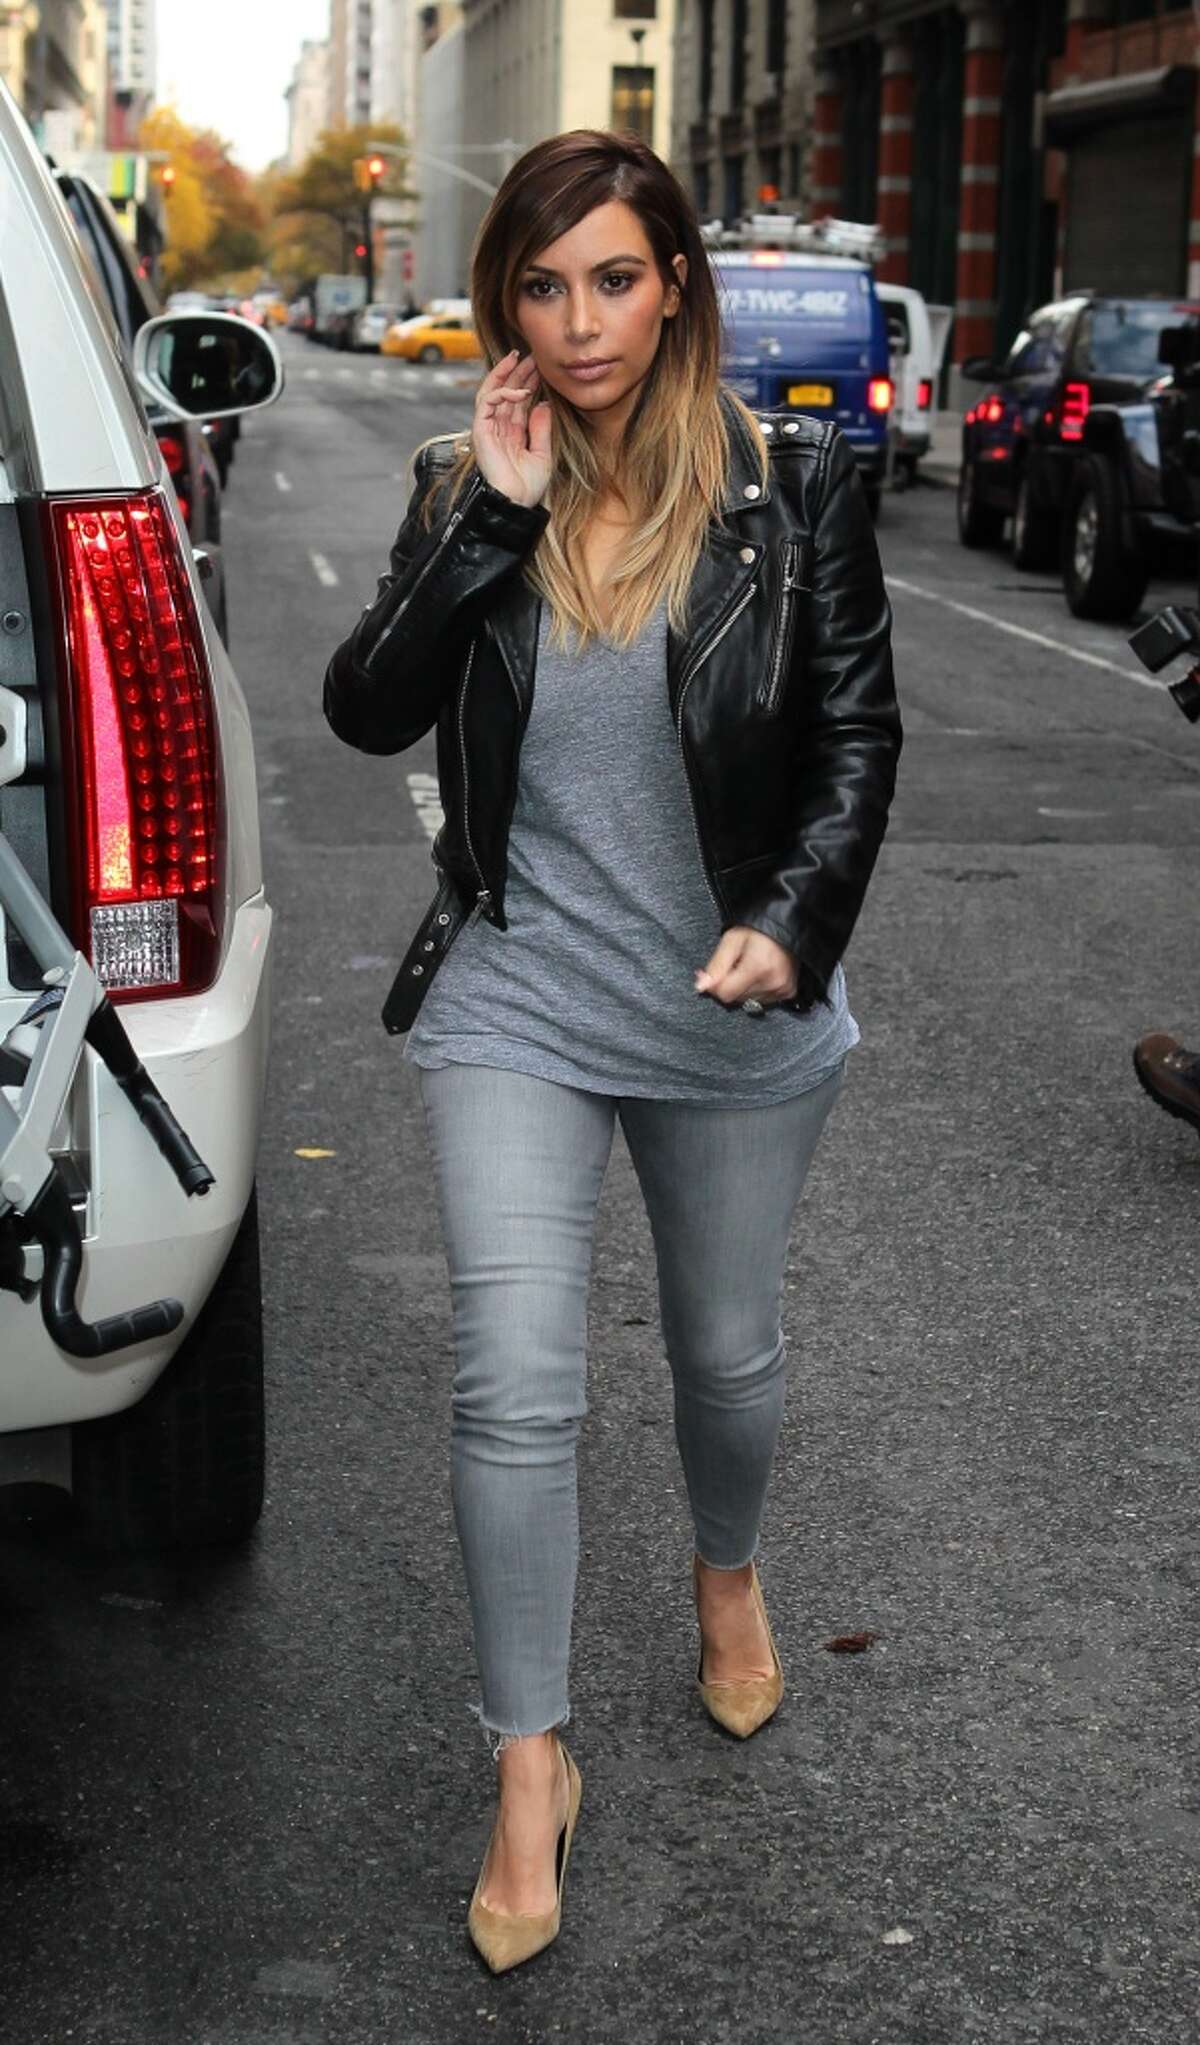 Skinny jeans. They're pervasive-yet often not entirely flattering (or comfortable). Given the name, is it any wonder they aren't doing many favors for most body types?